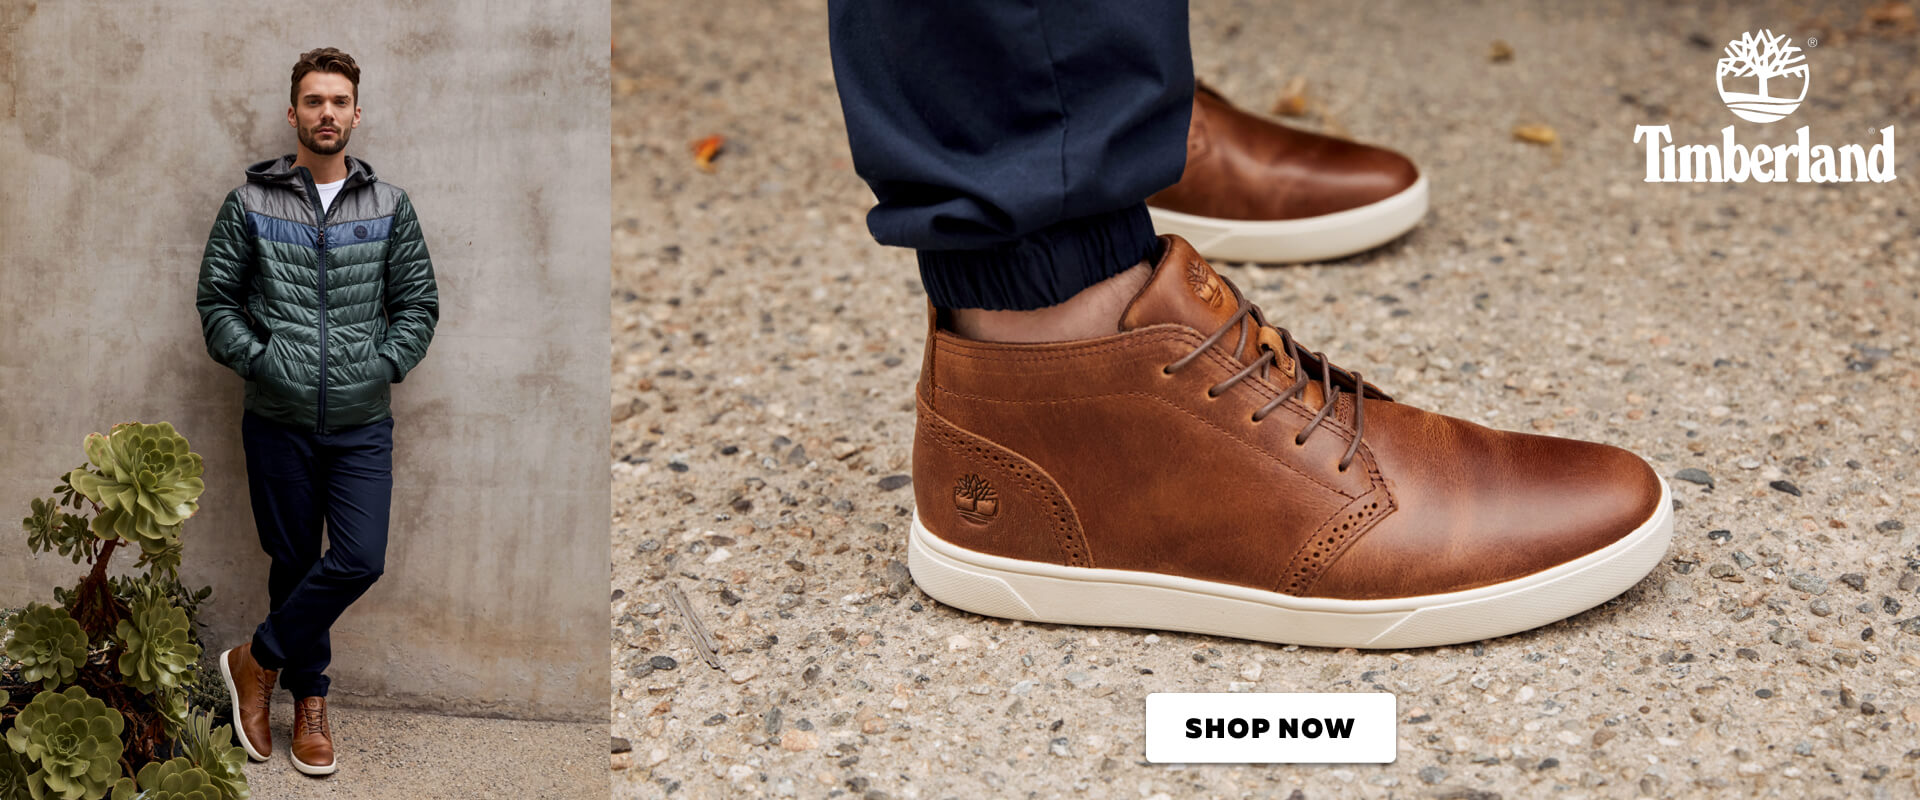 Timberland-Mens-Grovetown-Chukka-Lifestyle-Shoes